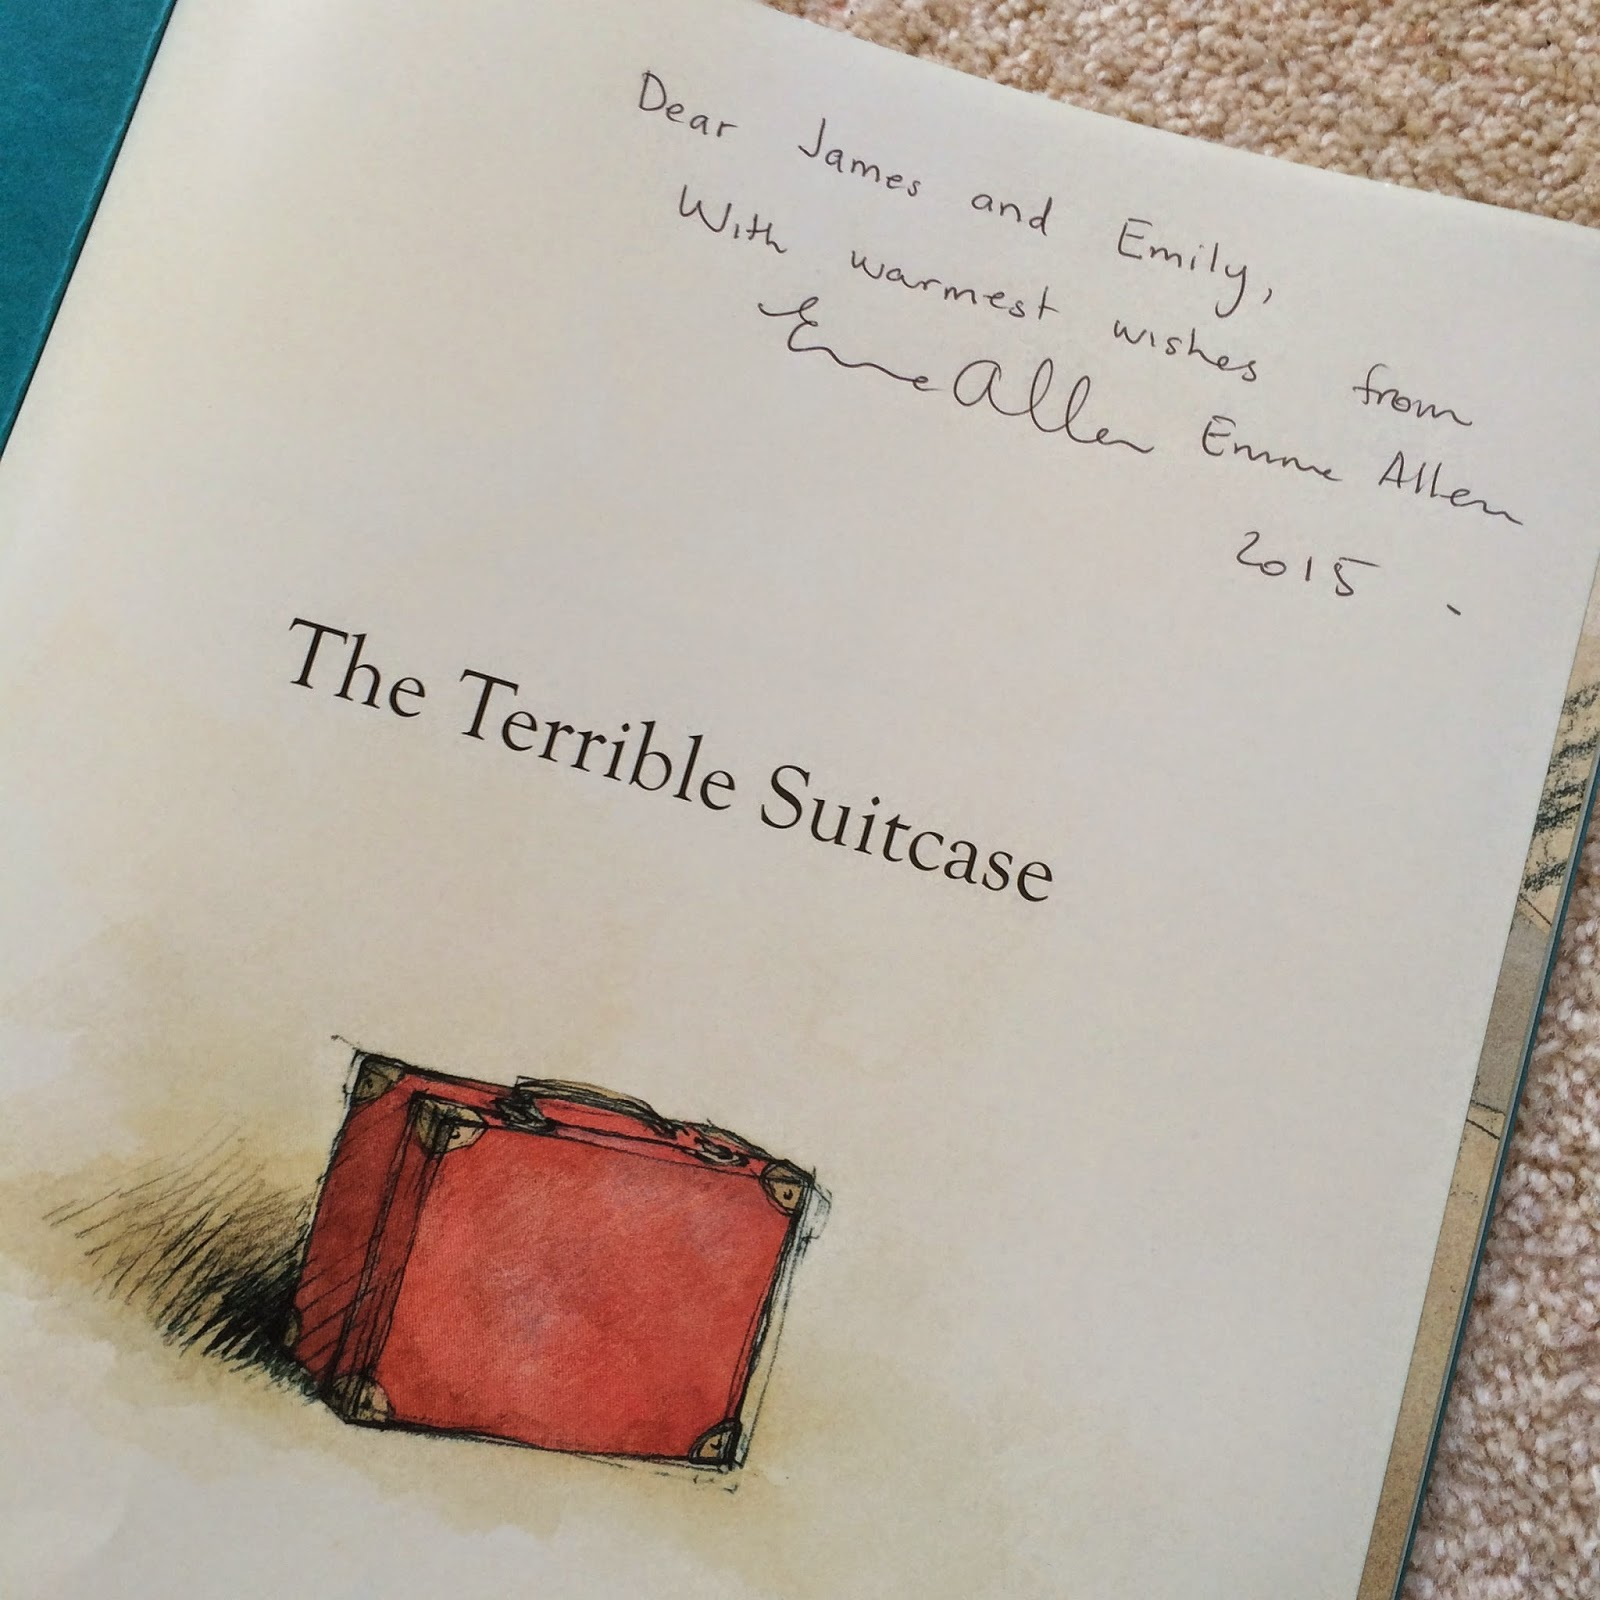 Our copy of The Terrible Suitcase signed by the Author